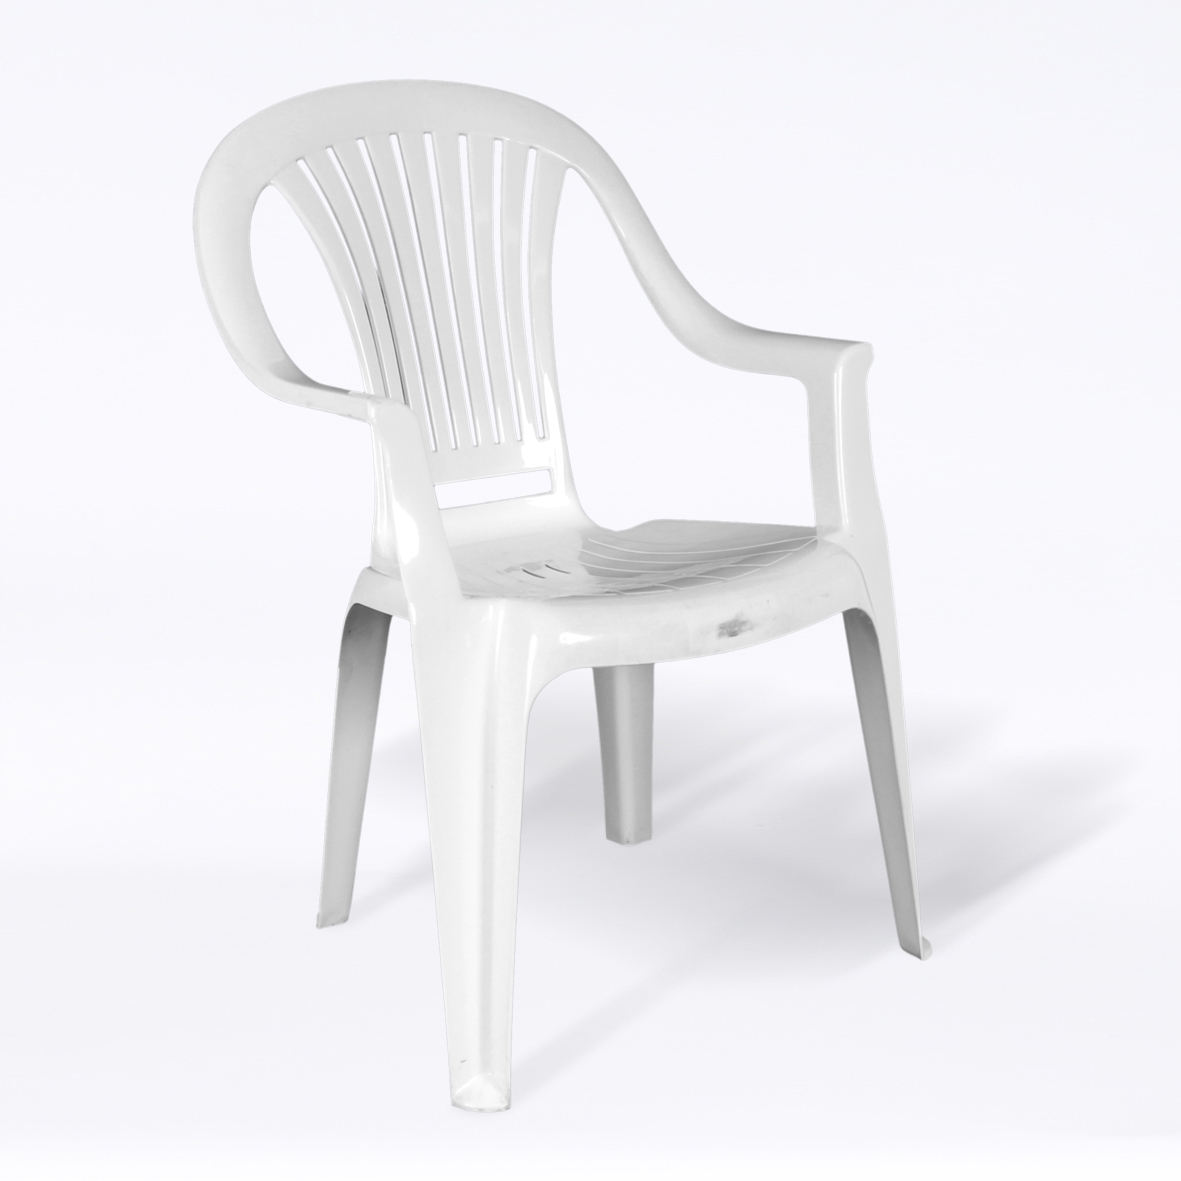 White Plastic Patio Chair intended for proportions 1181 X 1181